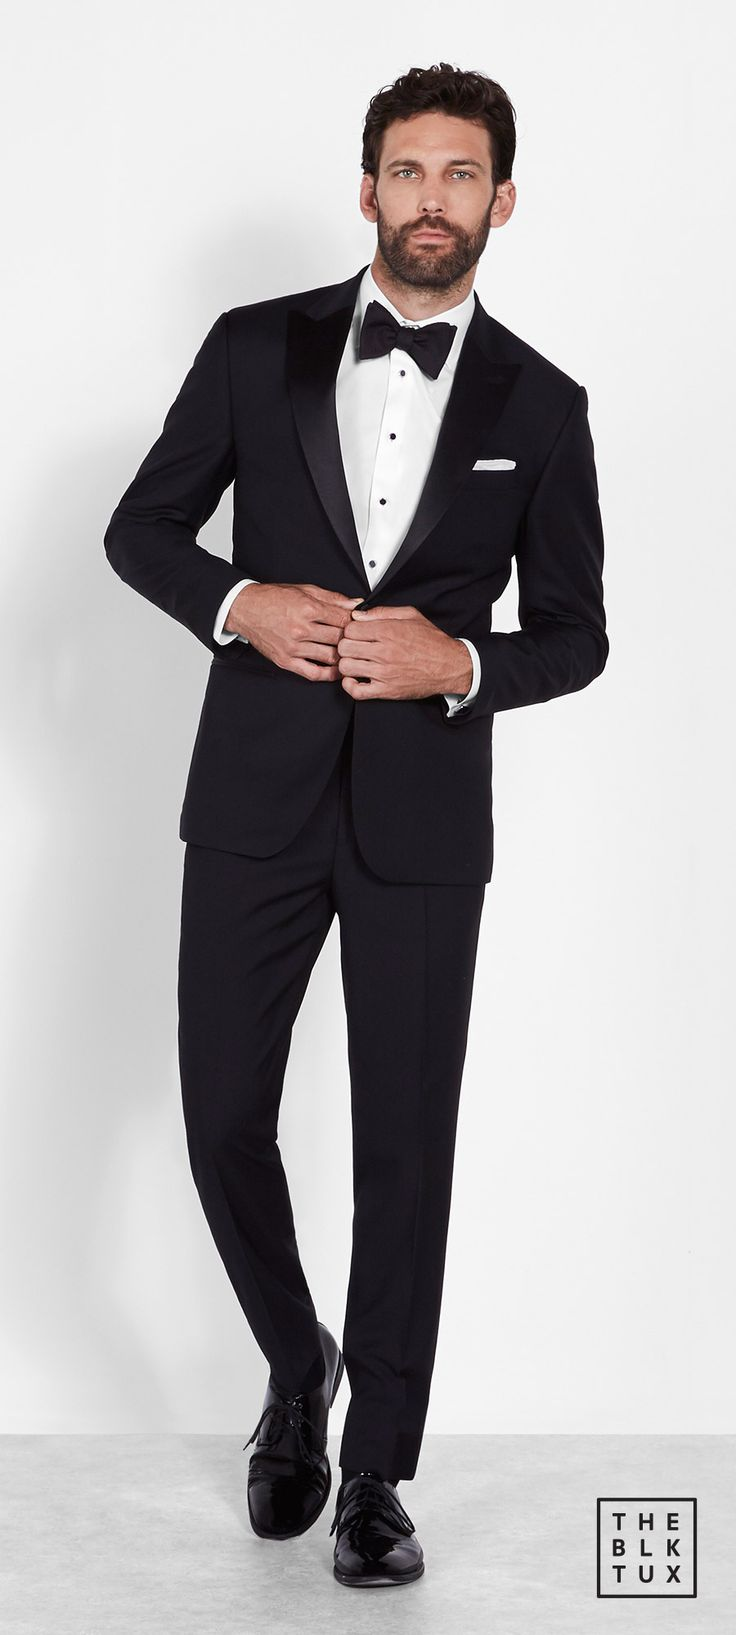 the black tux 2017 online tuxedos rental service the peak lapel tuxedo groommen best man style -- Suit Up in Style, The Black Tux Way